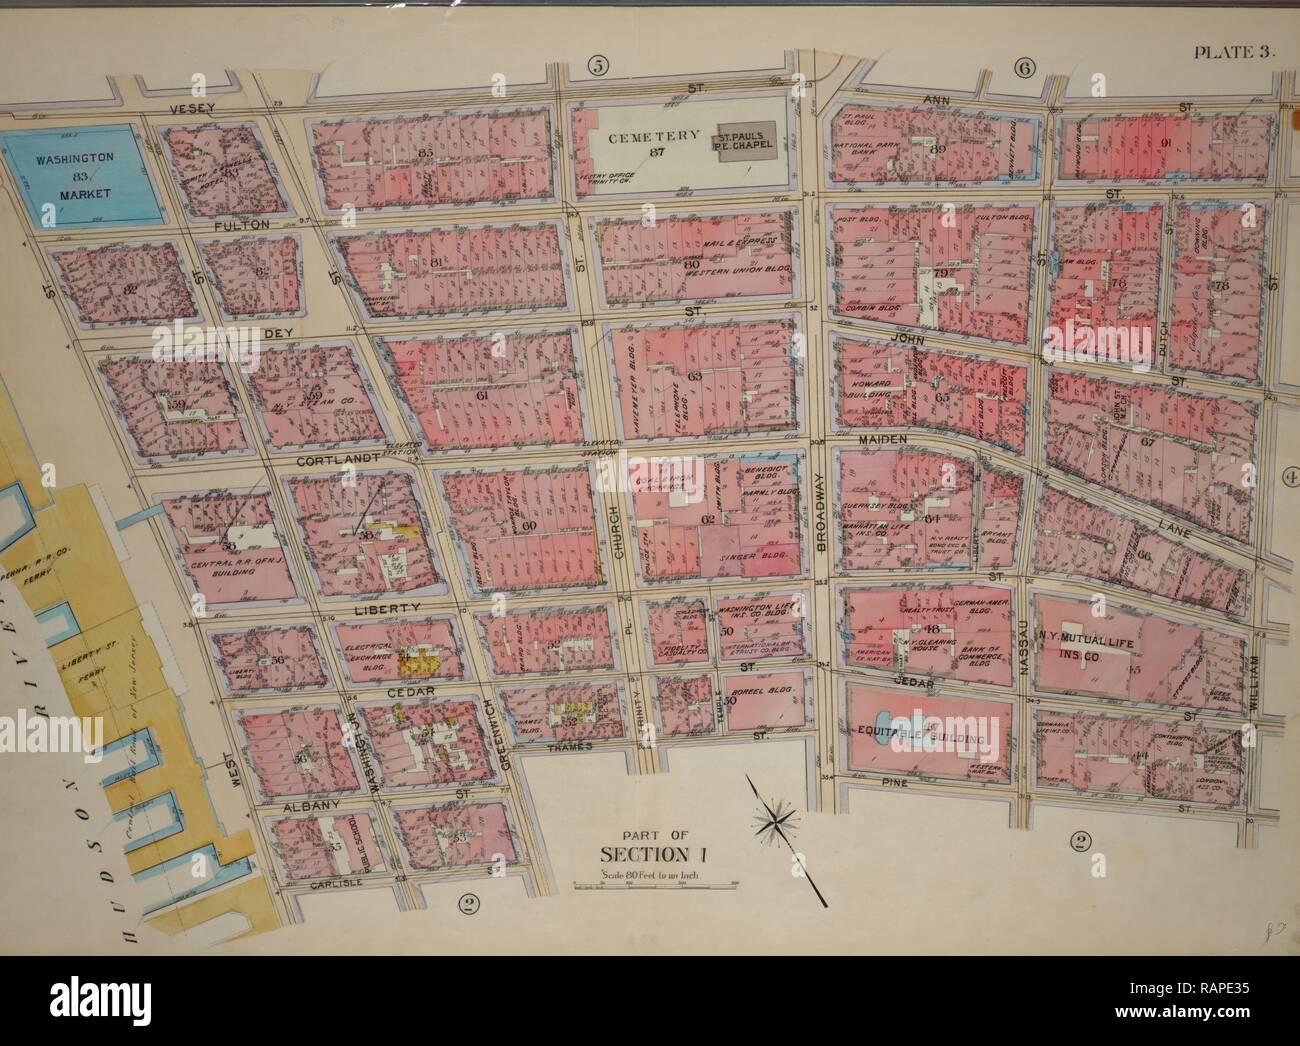 Plate 3, Part of Section 1: Bounded by Vesey Street, Ann Street, William Street, Pine Street, Broadway, Thames Street reimagined - Stock Image